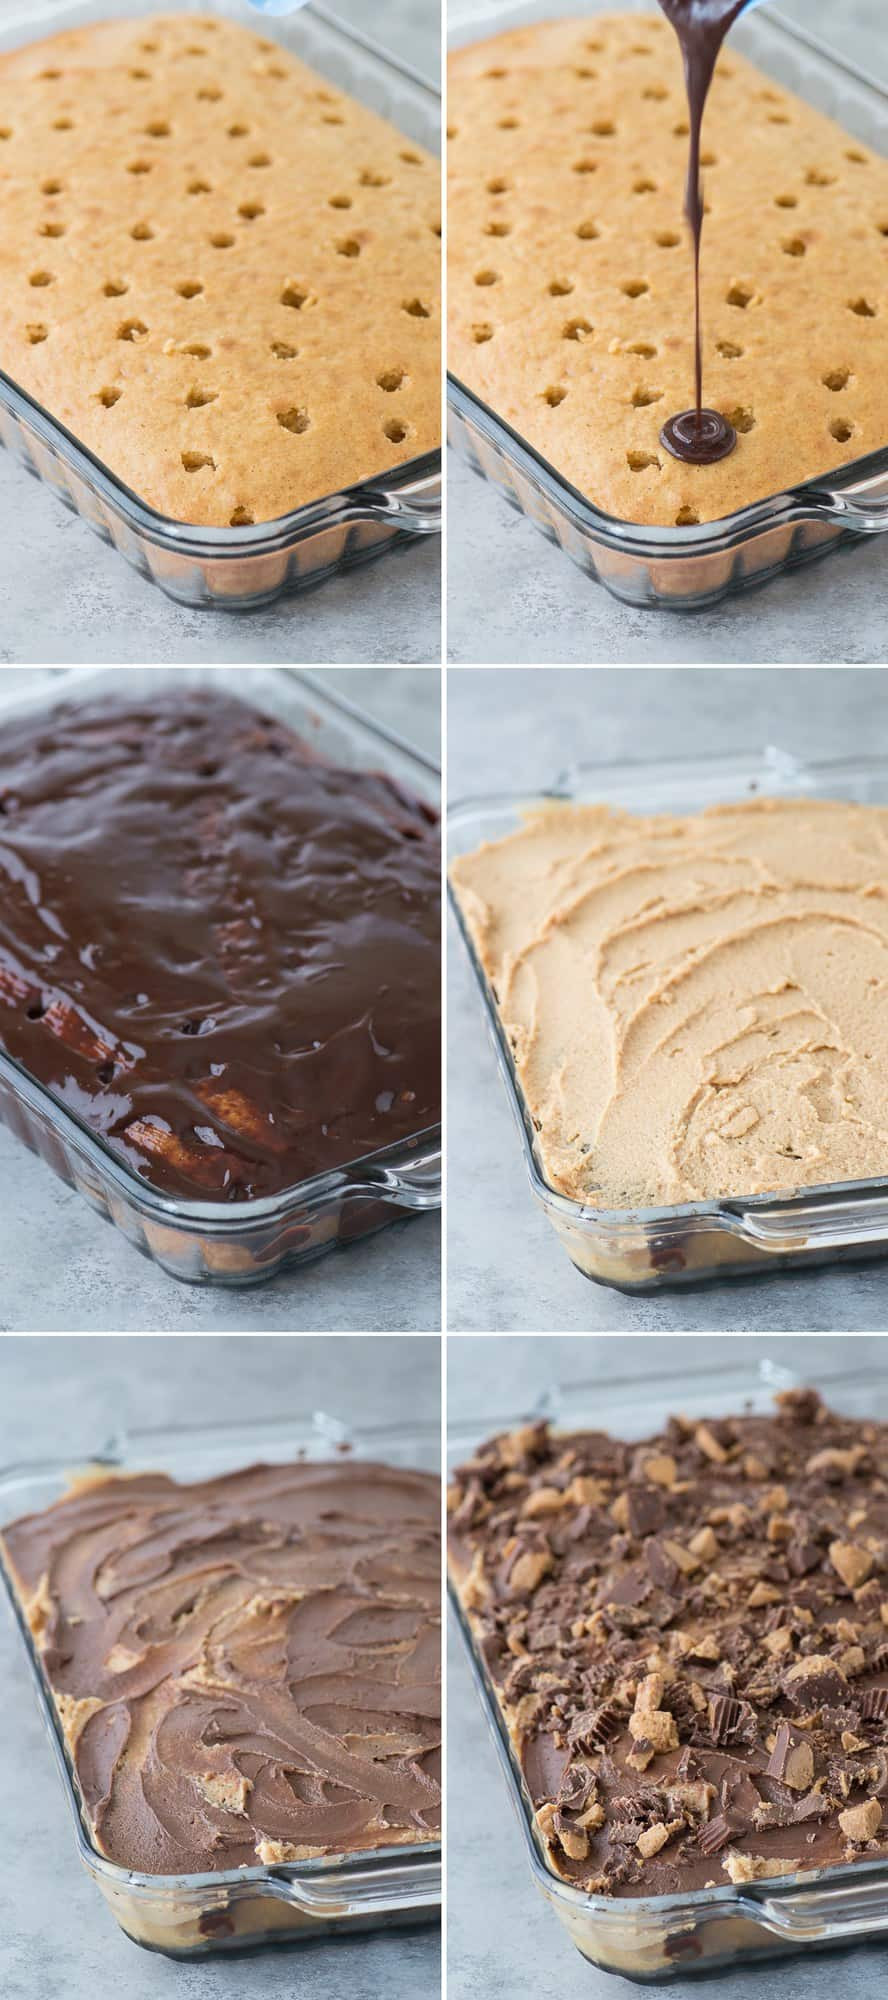 Peanut Butter Chocolate Poke Cake - peanut butter cake, chocolate ganache, peanut butter cream cheese frosting mixed with chocolate frosting all topped with peanut butter cups!